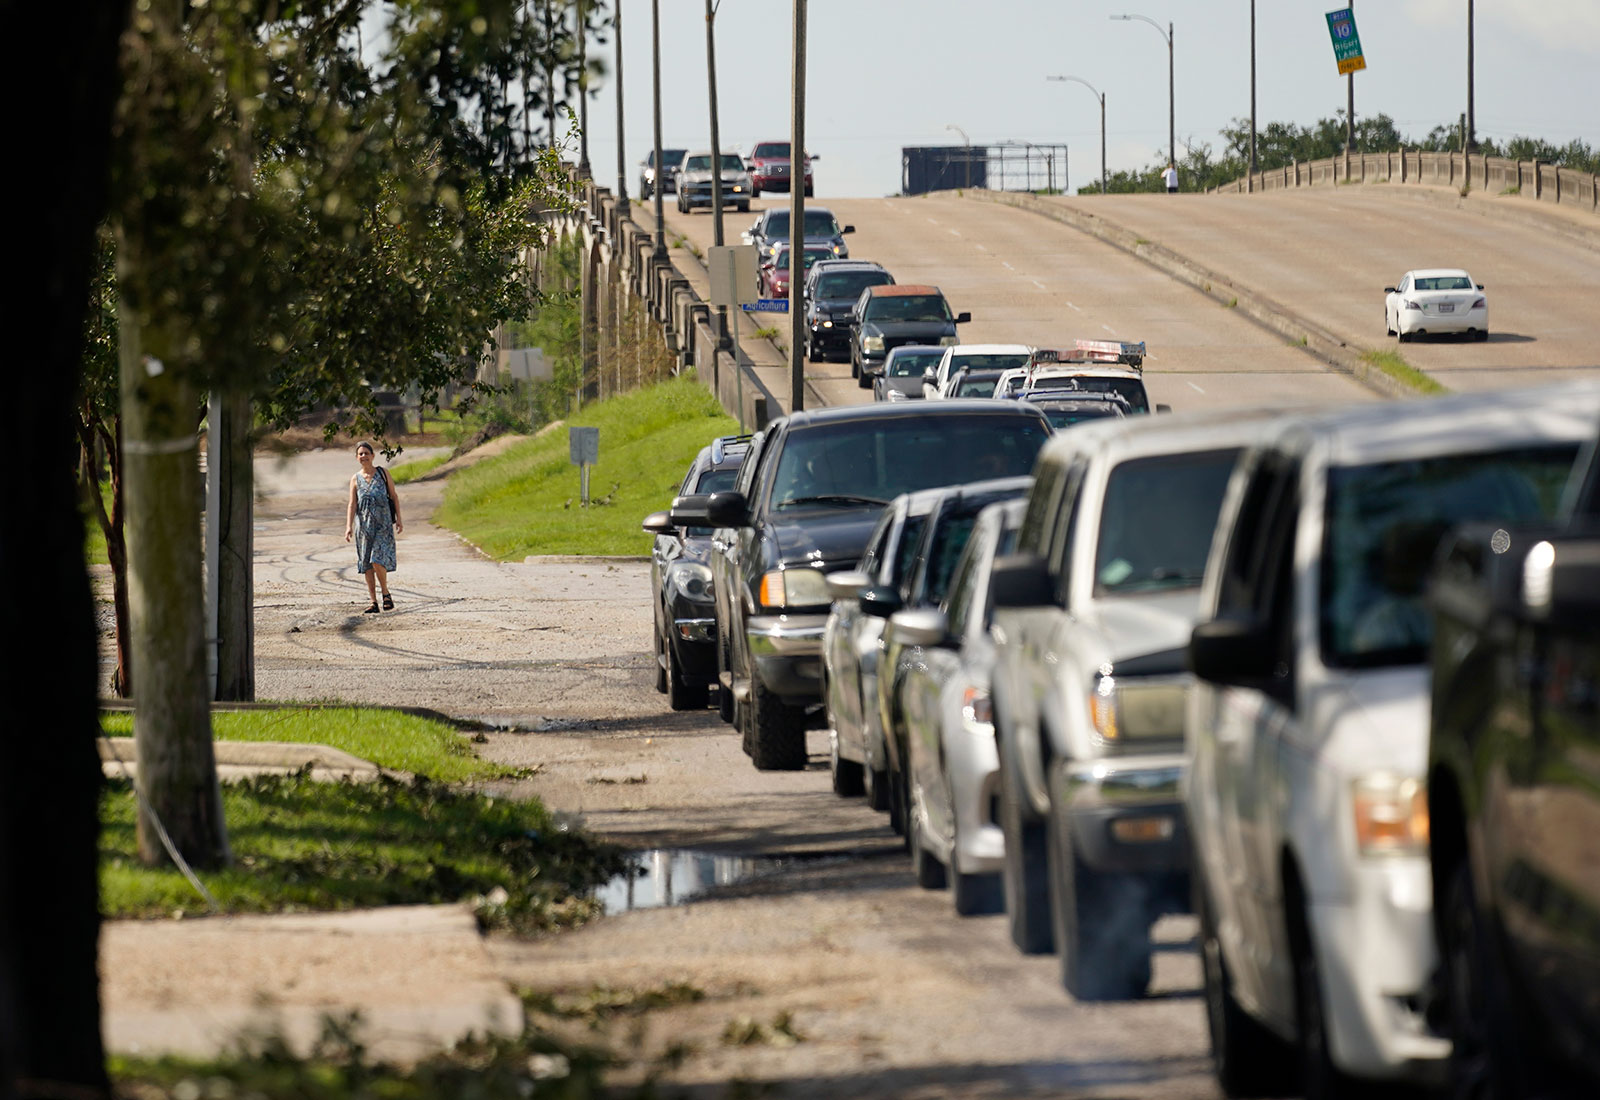 Motorists wait in line for gas in New Orleans on August 31.